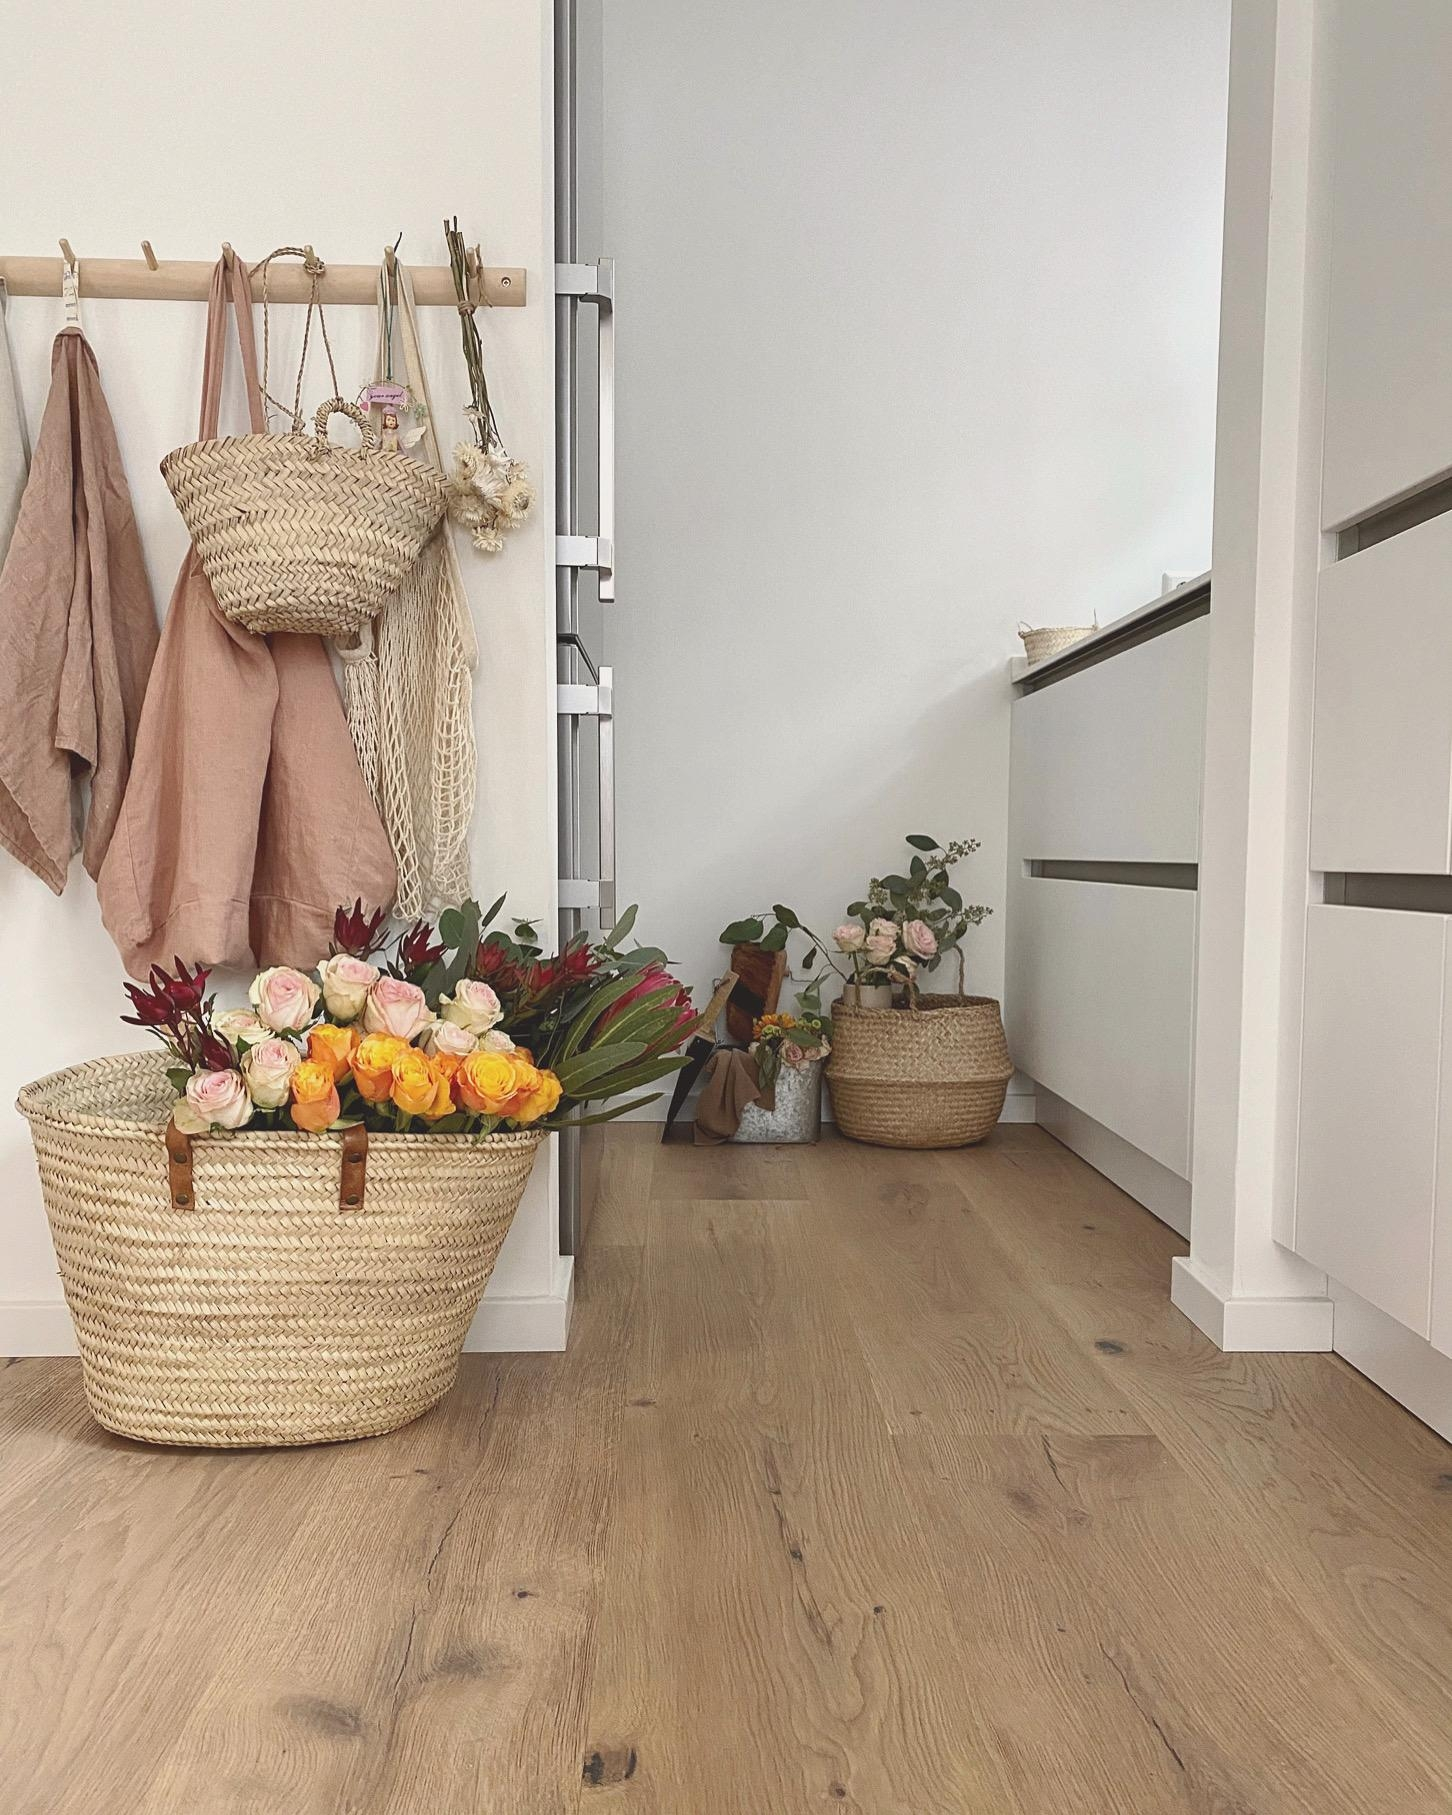 Flowers and baskets, always a lovely combo 🧡